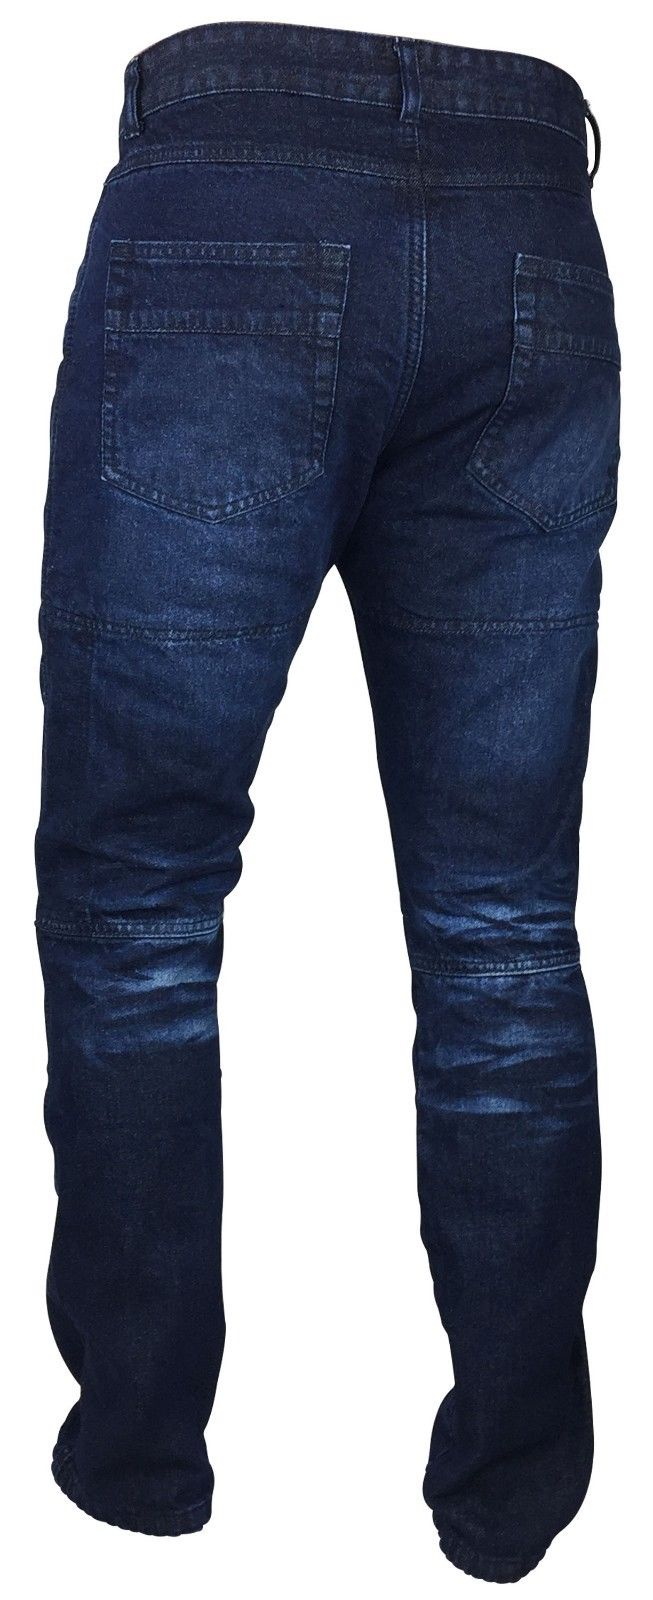 Men S Denim Motorcycle Motorbike Jeans With Protective